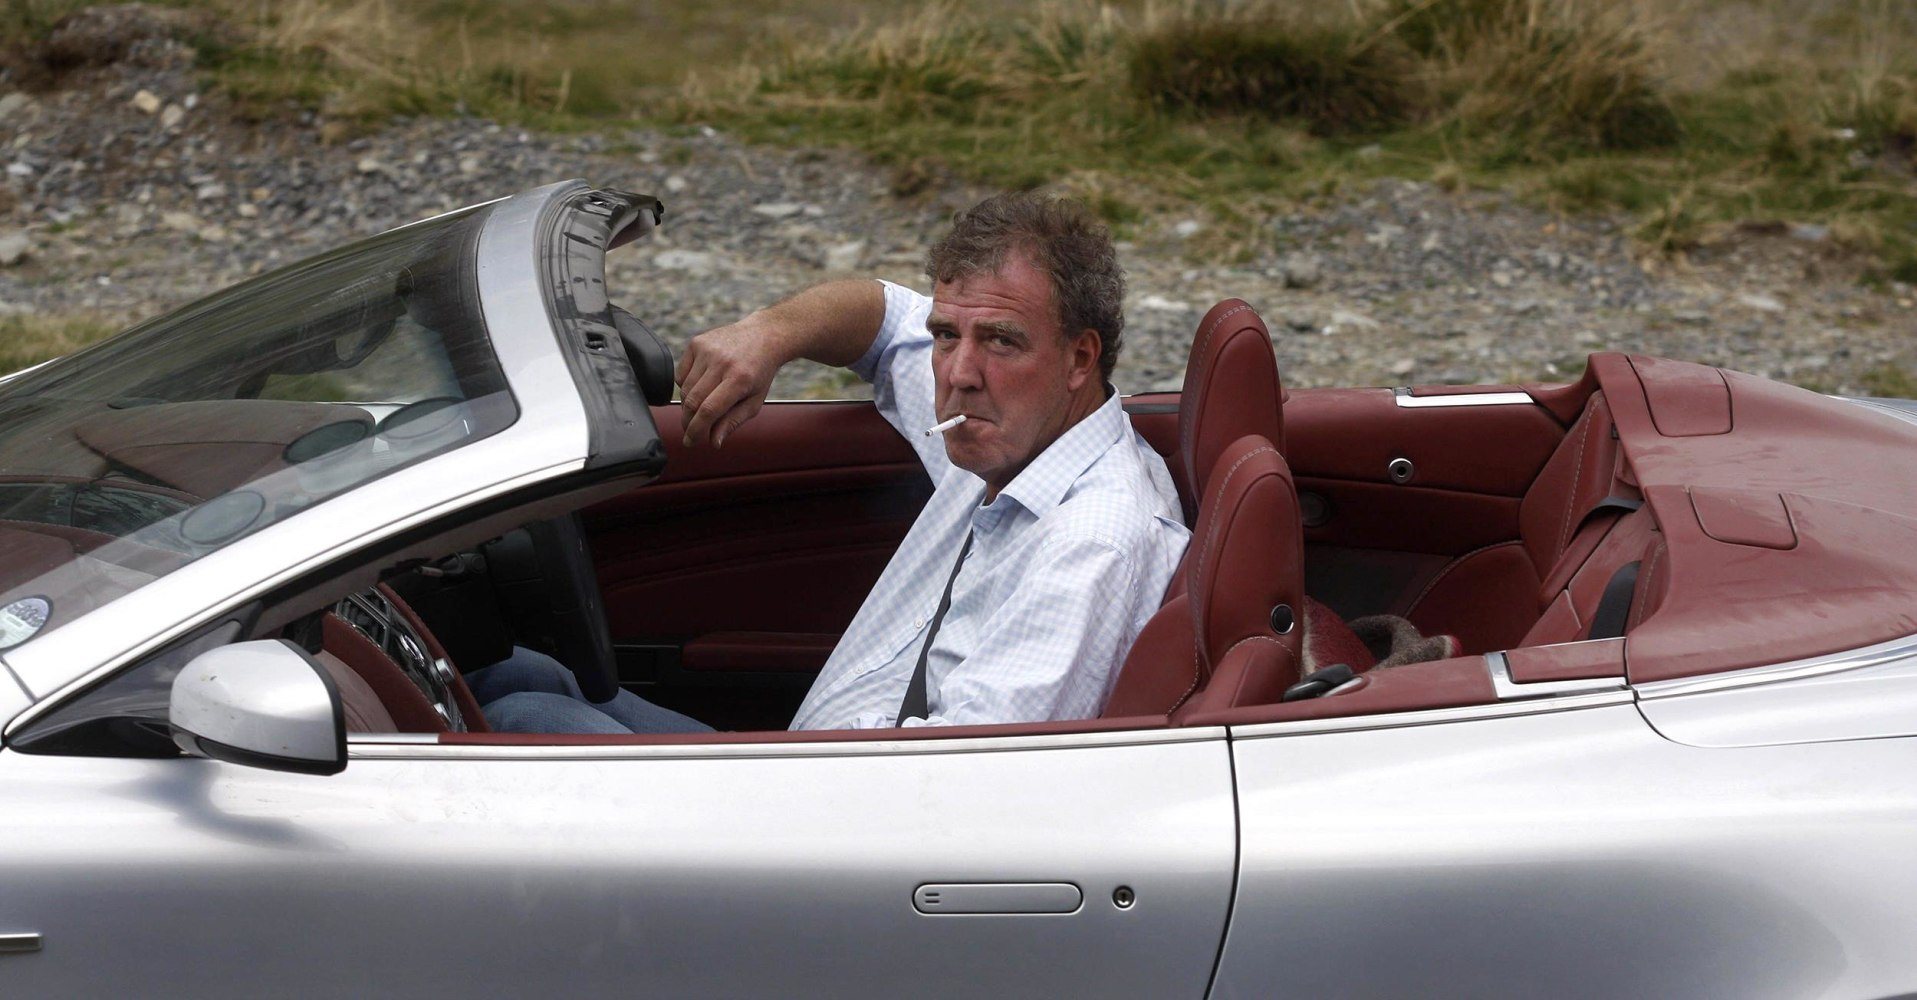 Top Gear Quotes Jeremy Clarkson Top Gear Jeremy Clarkson